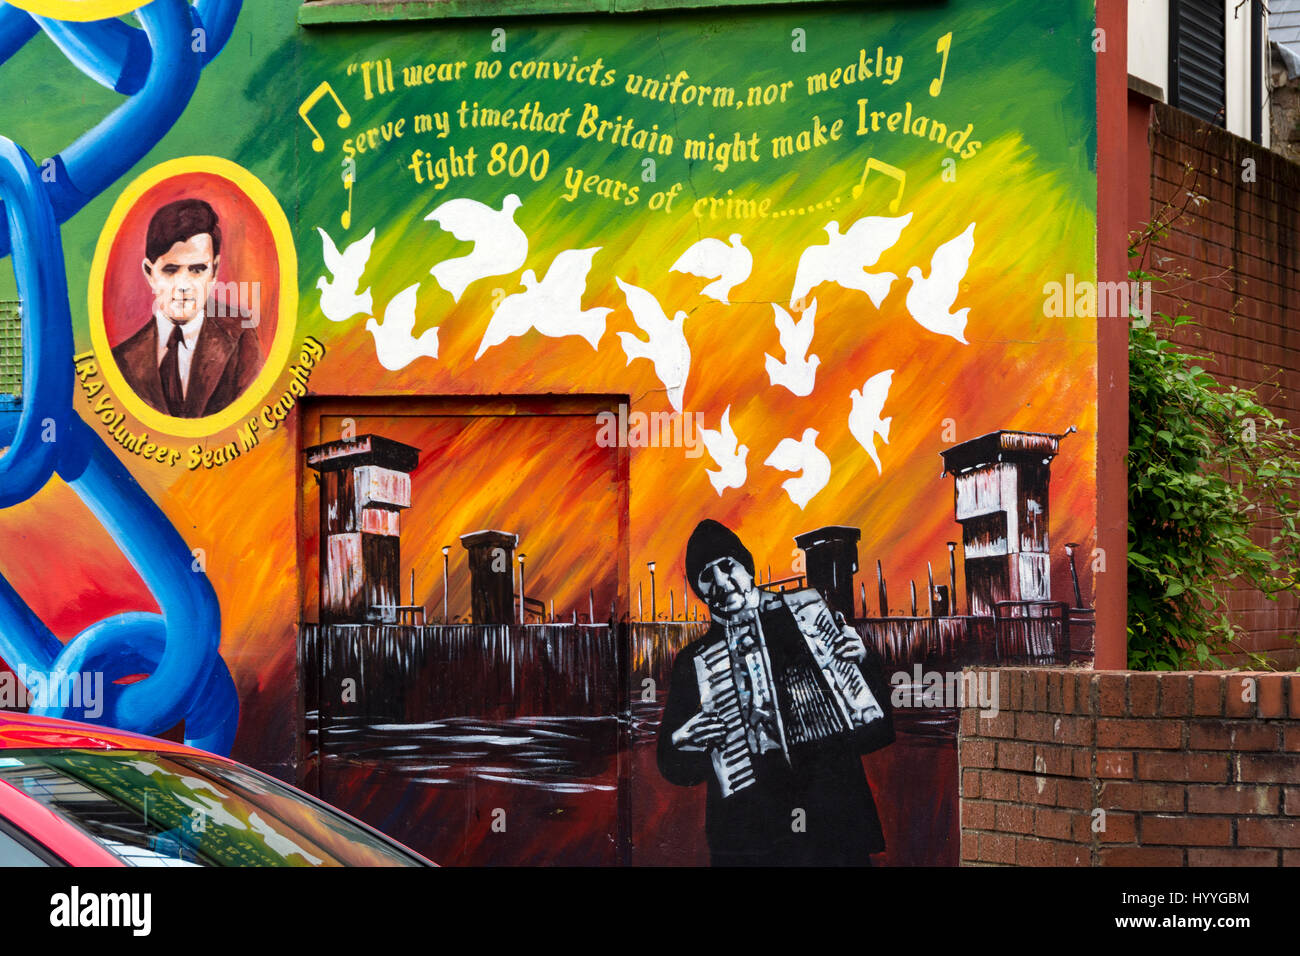 Detail from a wall mural on the side of the Sinn Féin office, Falls Road, Belfast, County Antrim, Northern - Stock Image